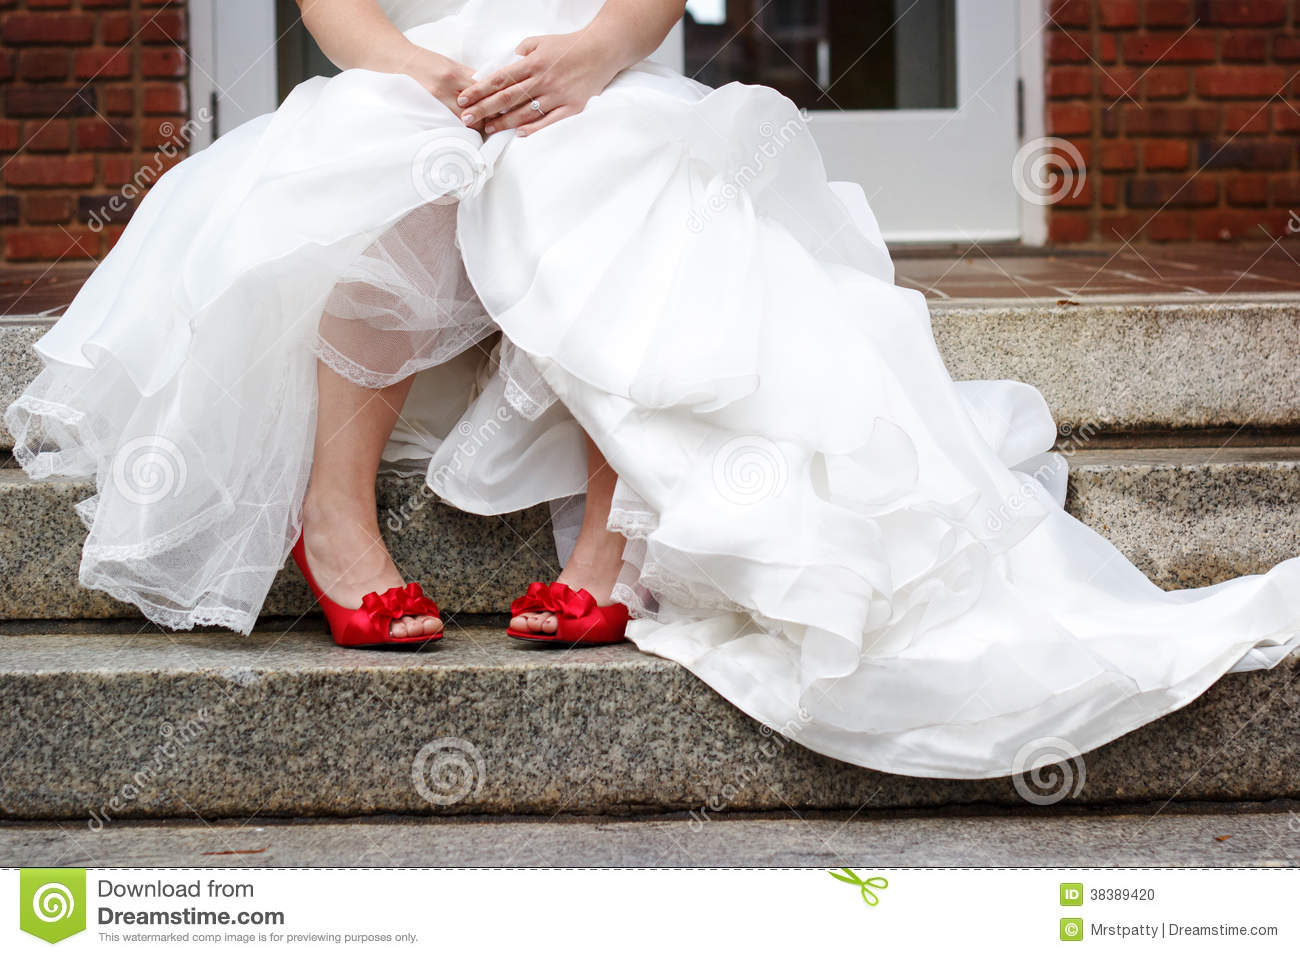 Red Shoes For Wedding | Bride Wearing White Wedding Dress And Red Shoes Stock Photo Image